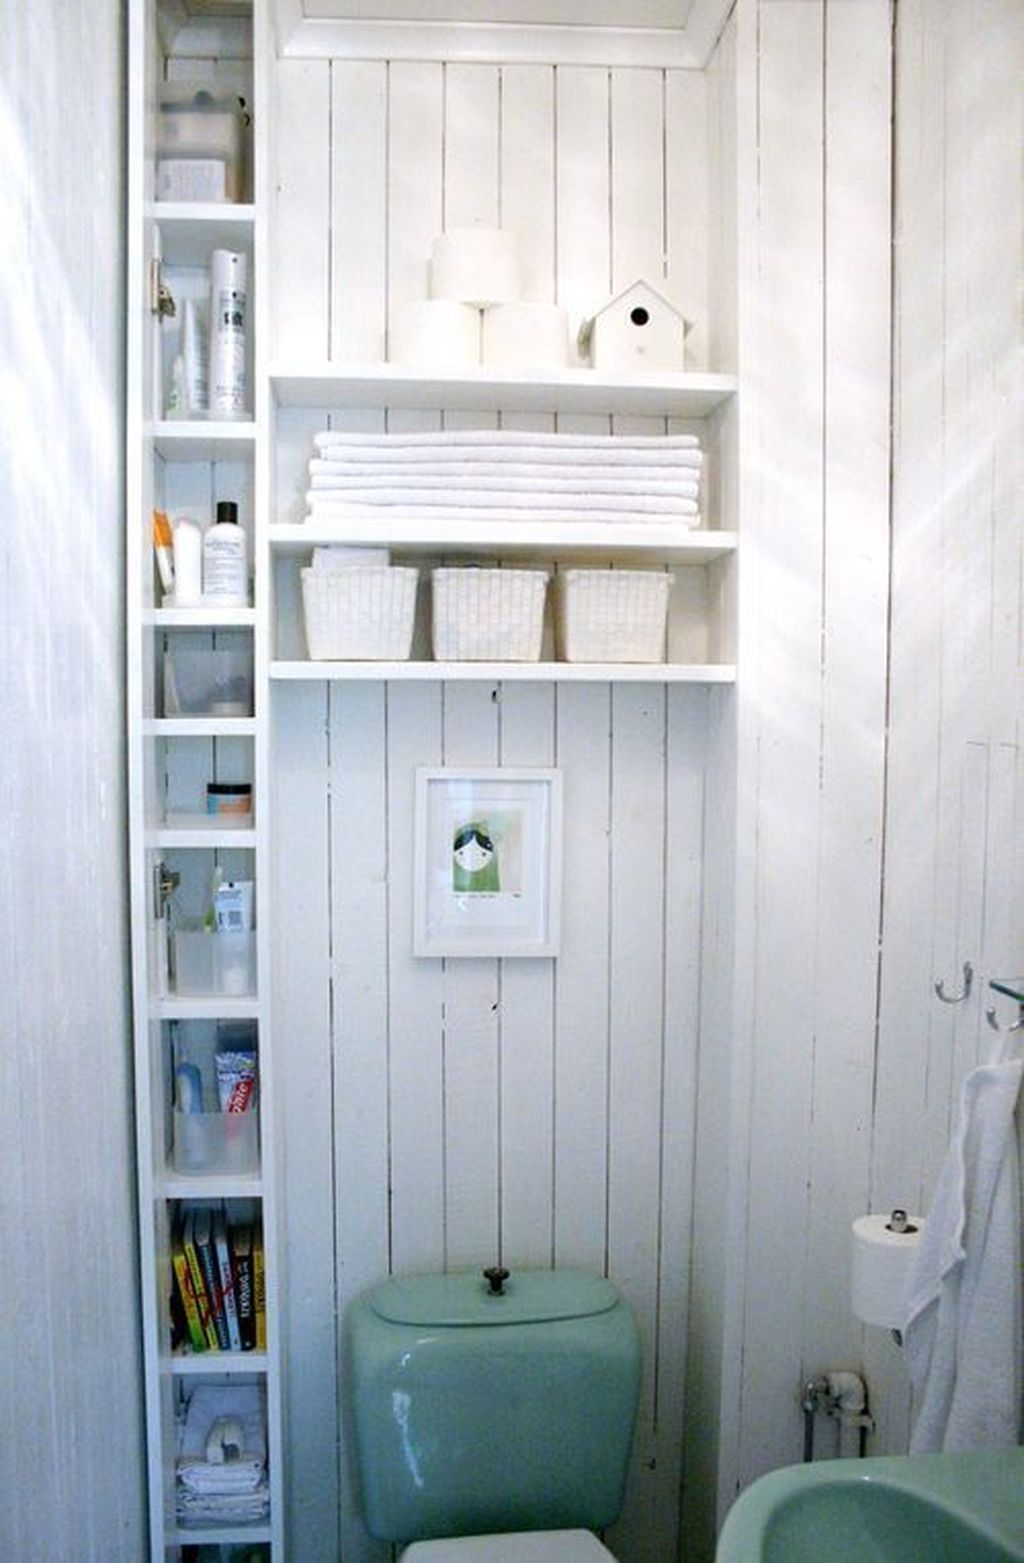 Amazing Bathroom Storage Design Ideas For Small Space 13